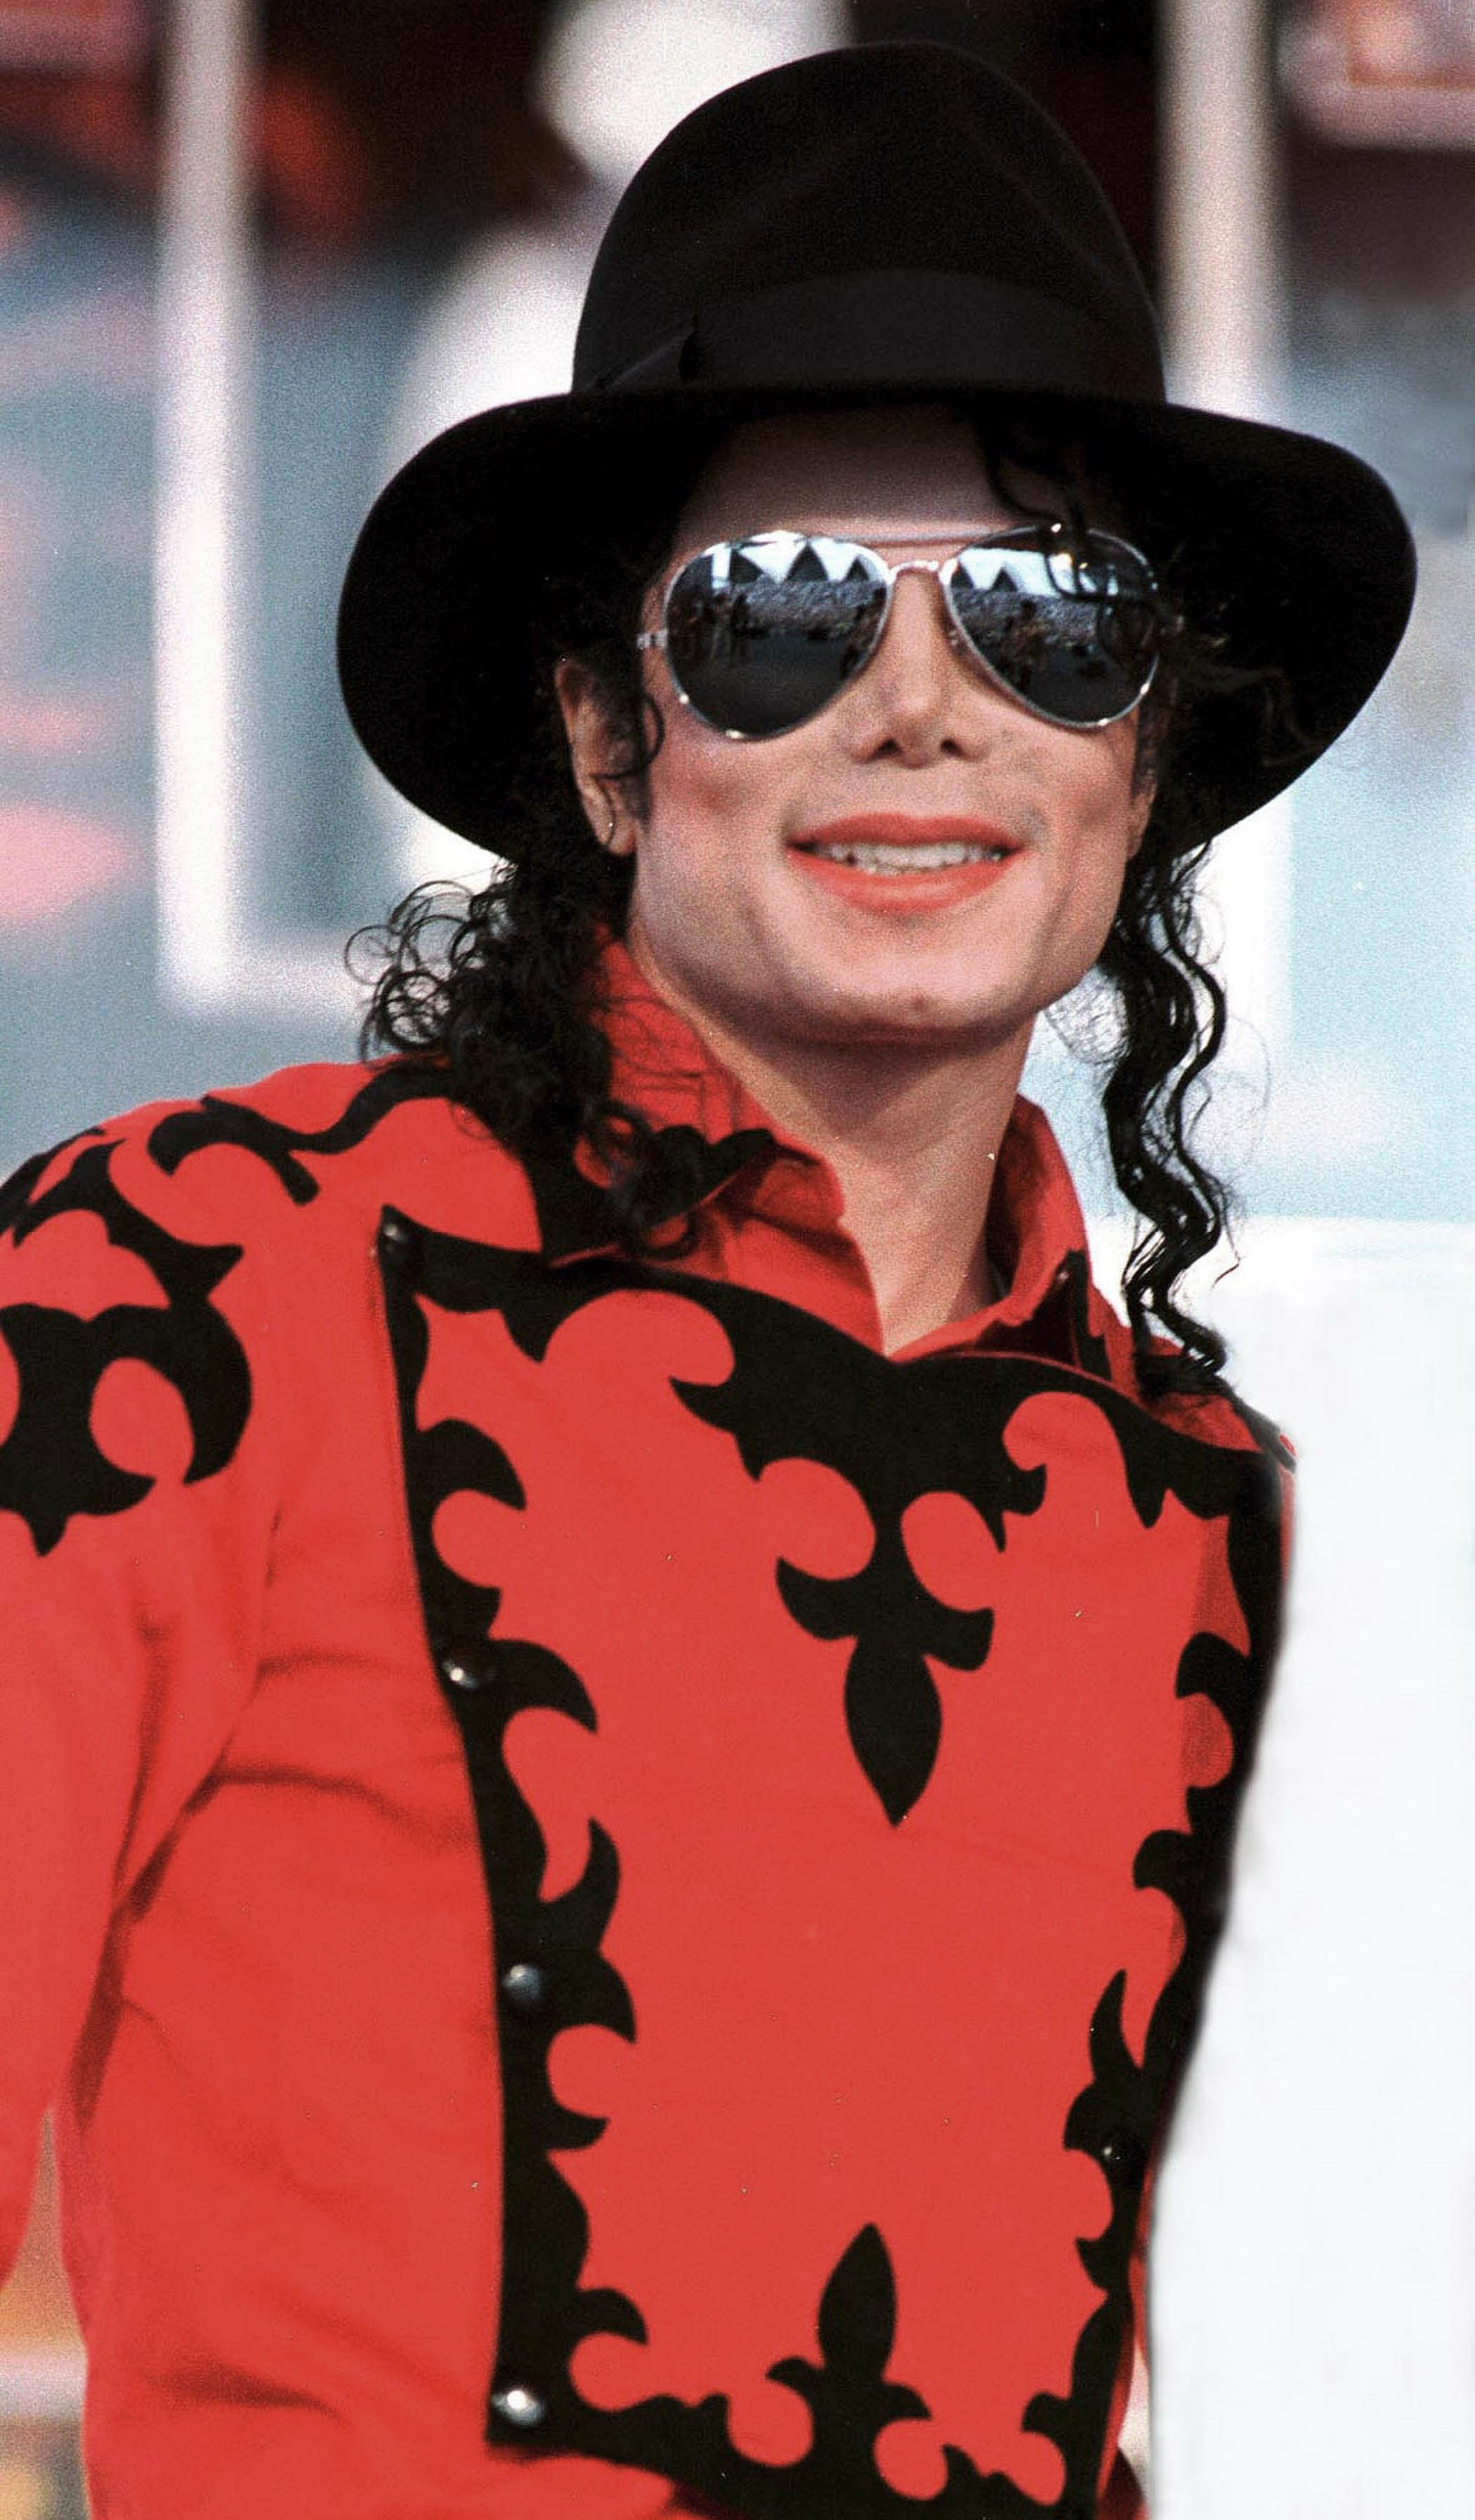 Michael Jackson Notes Reveal Grand Ambitions To Be